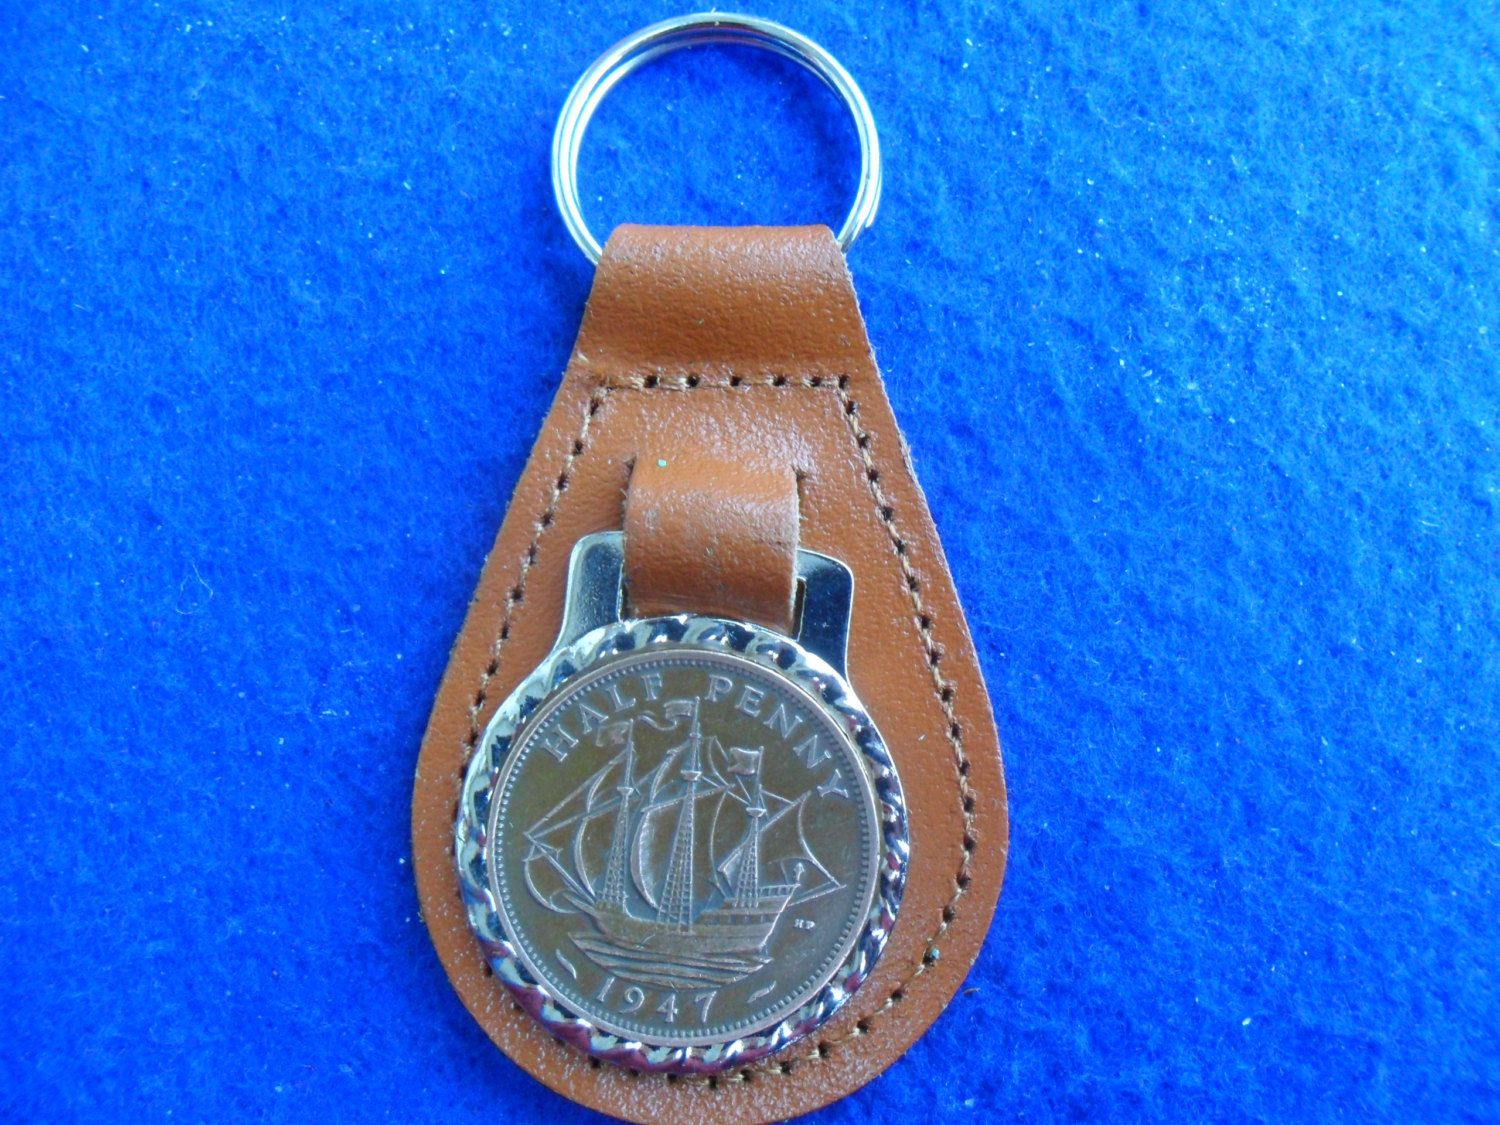 70th Birthday Present 1948 Lucky Halfpenny British Coin Leather Keyring Unusual Gift For A Woman Man By Staffscoins On